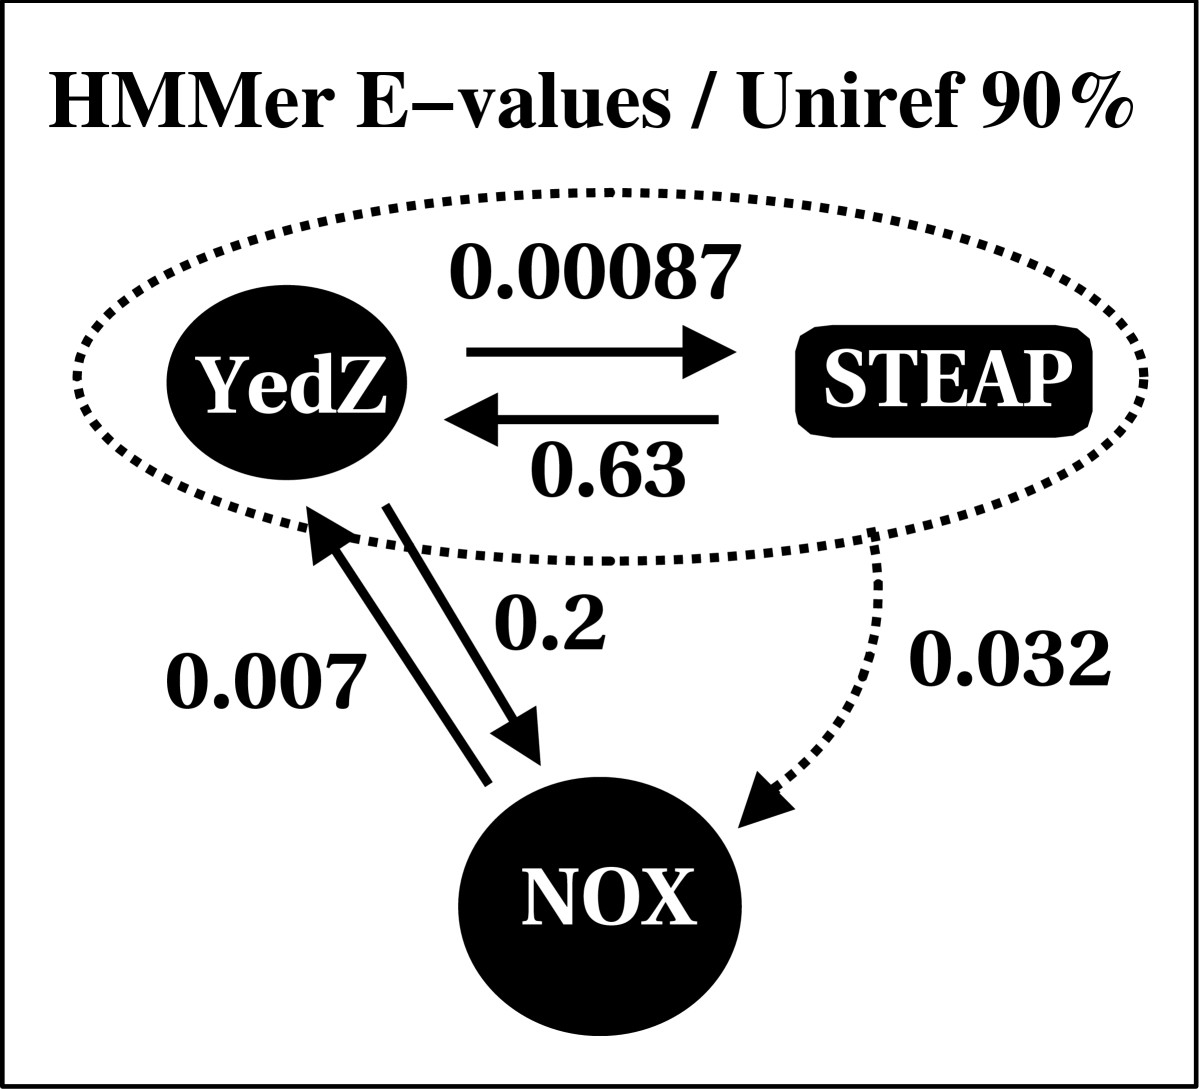 https://static-content.springer.com/image/art%3A10.1186%2F1471-2407-4-98/MediaObjects/12885_2004_Article_188_Fig3_HTML.jpg